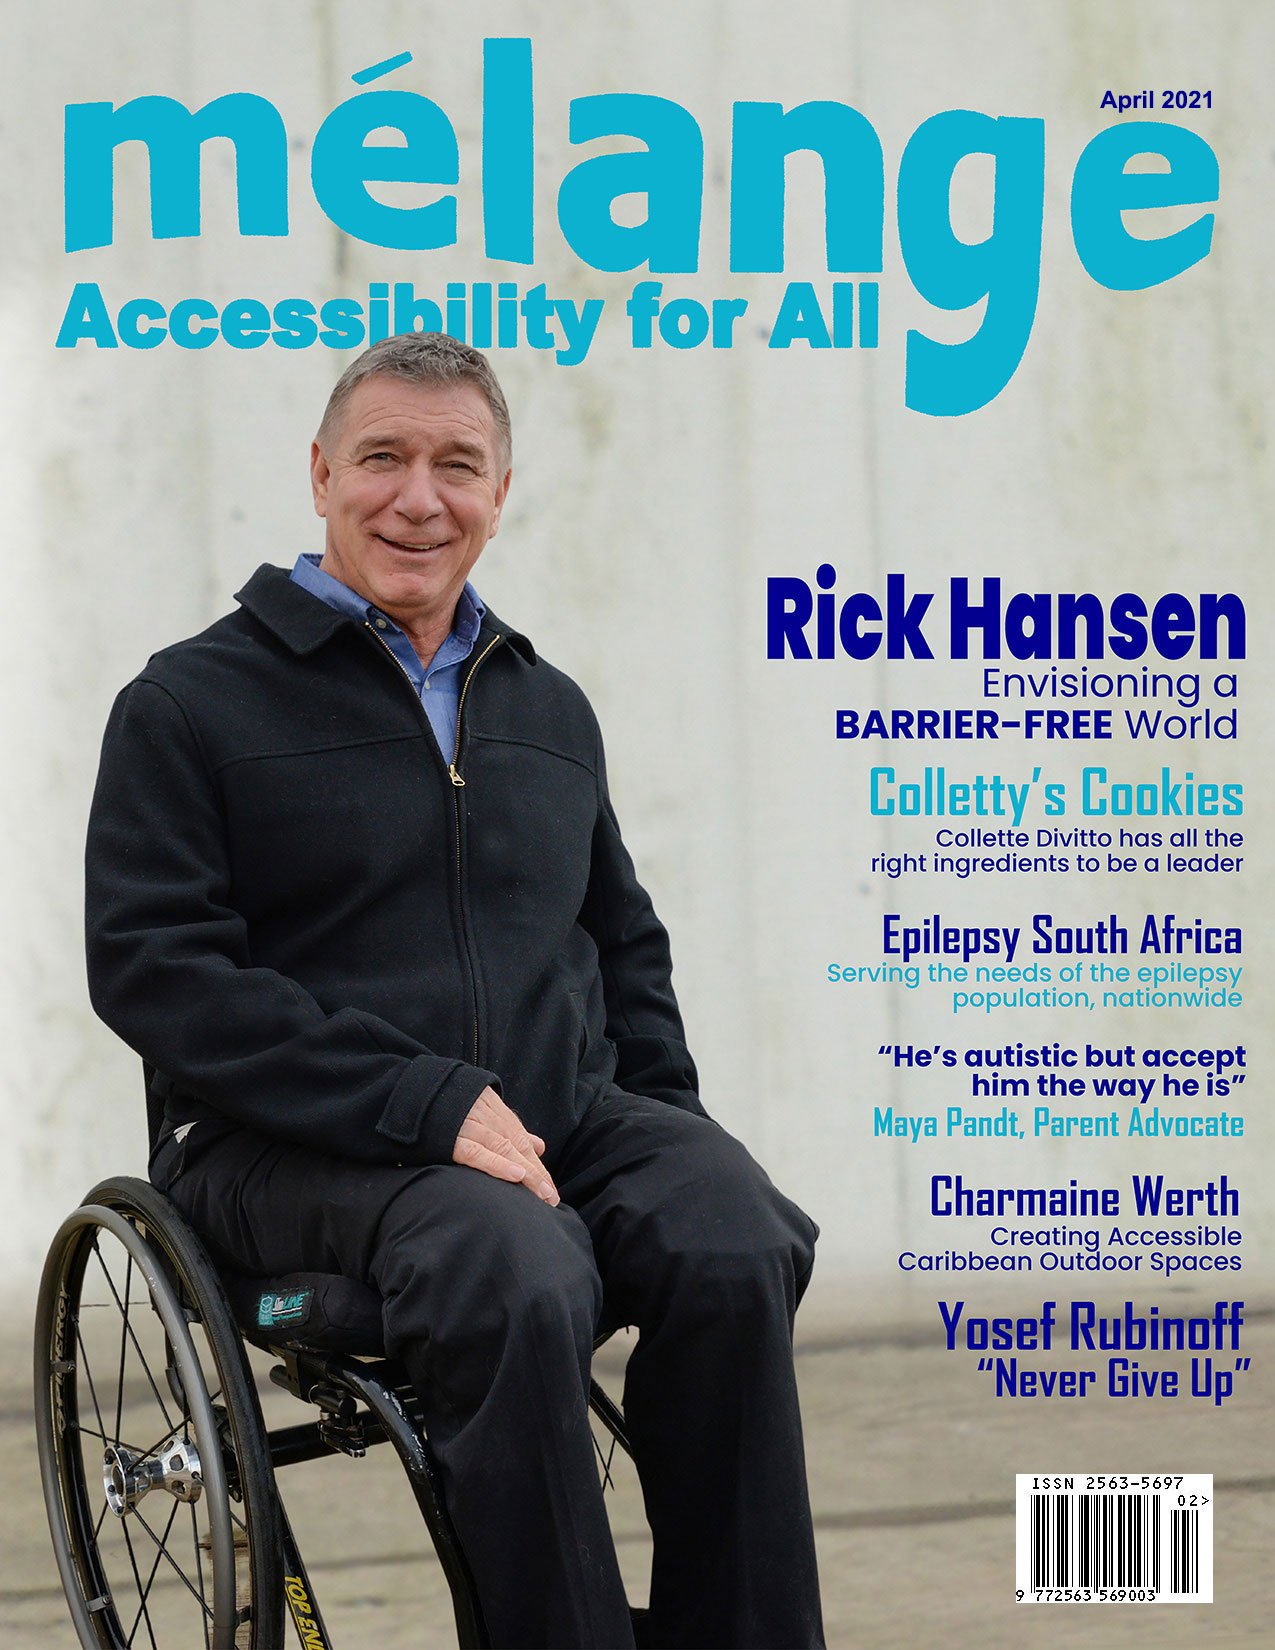 April cover of Mélange Accessibility for All magazine showing Rick Hansen of the Rick Hansen Foundation